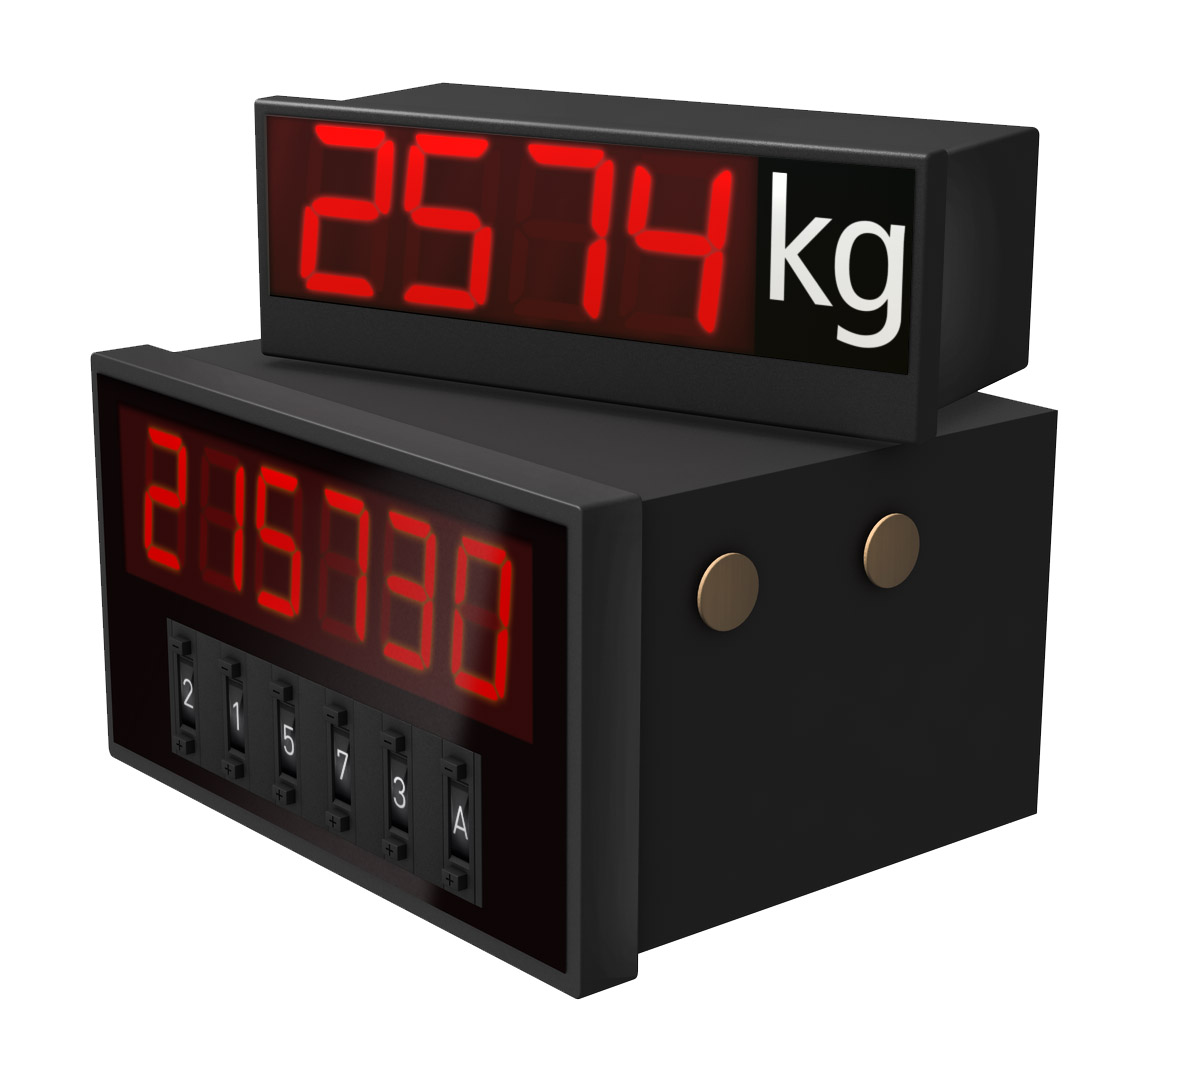 Installation displays, character height: 14 to 60 mm, DIN installation sizes, different interfaces available